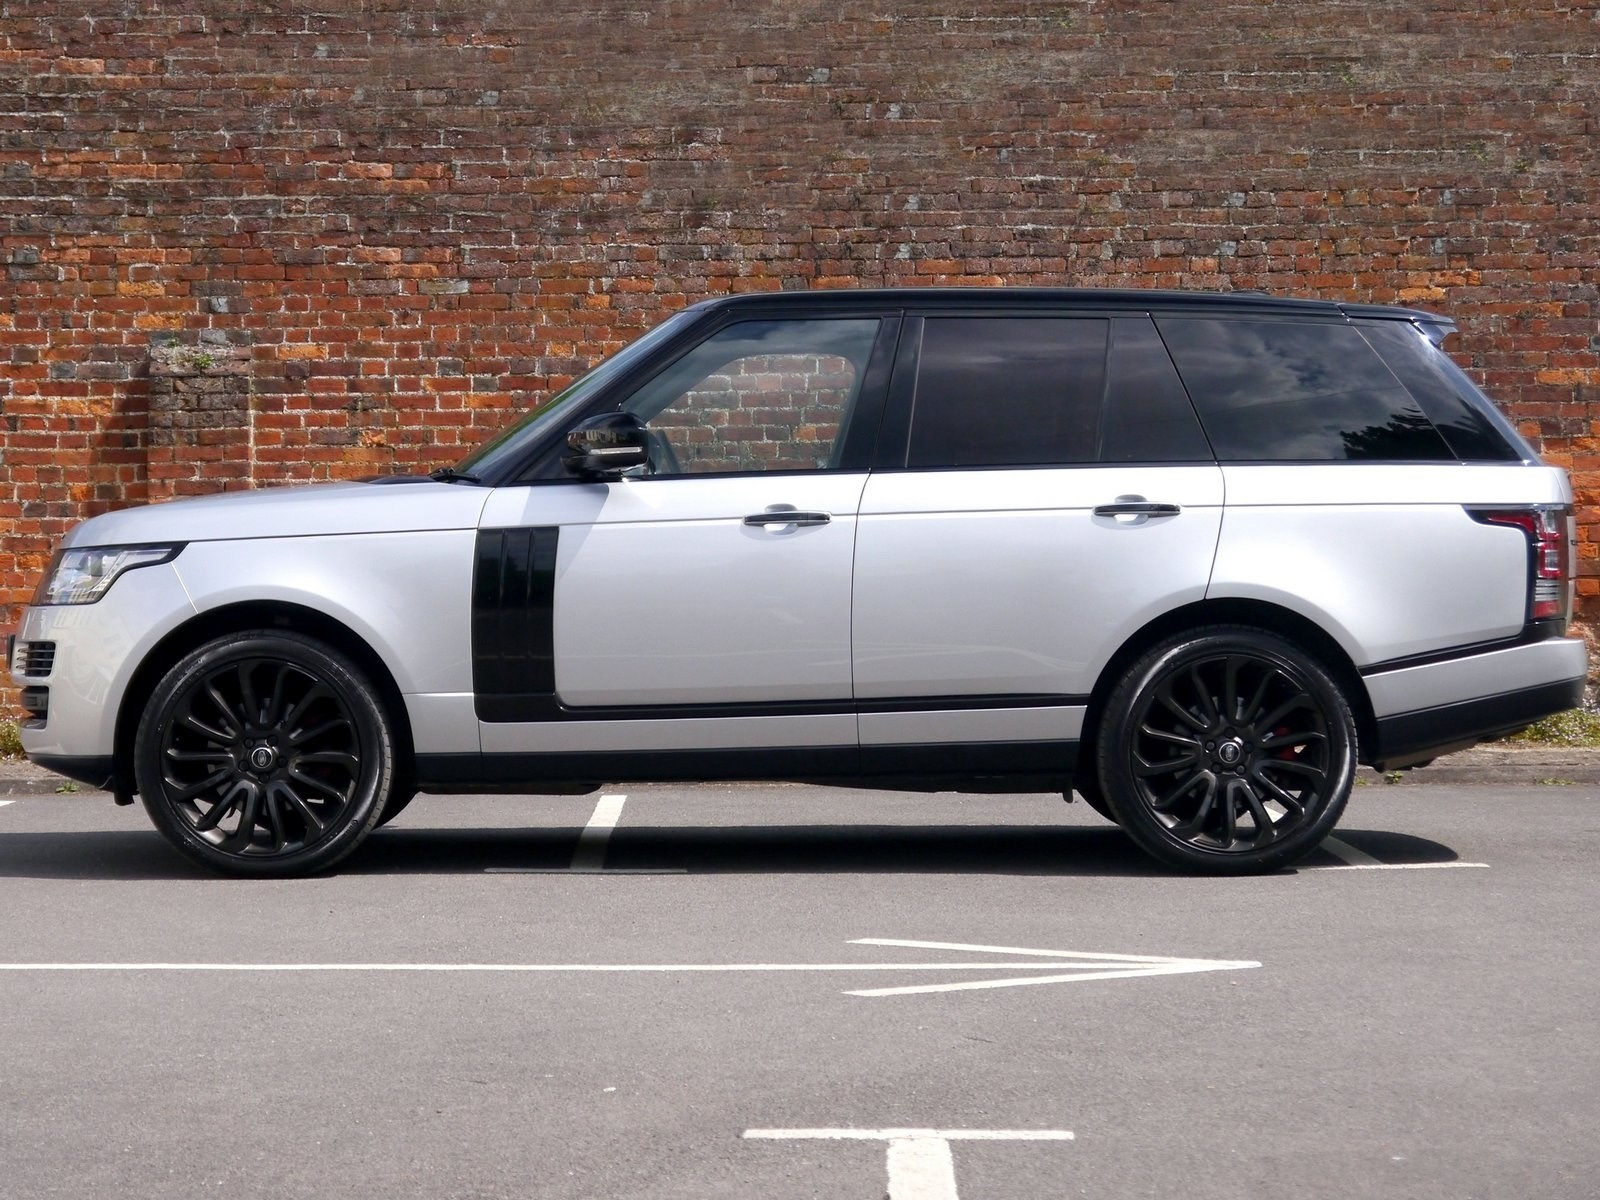 Off Road Vehicles For Sale >> Land Rover Range Rover Vogue SE - Black Pack - 22'' alloys ...